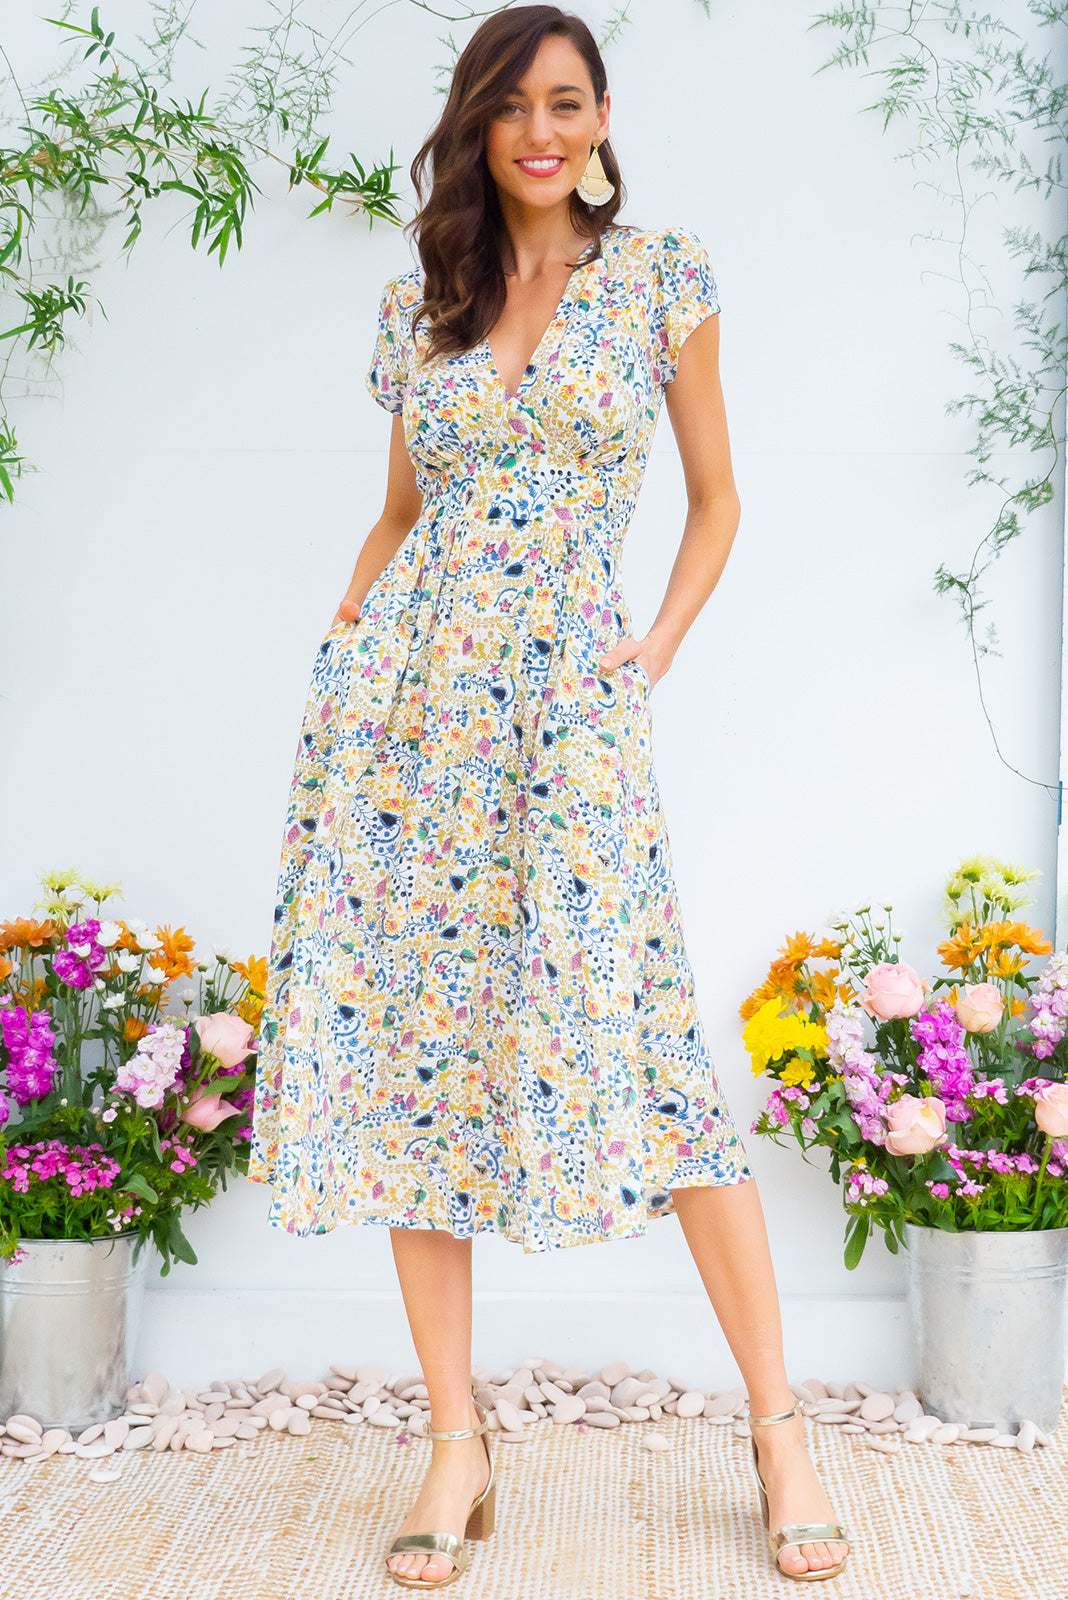 Lizzie Summer Garden Midi dress features a vintage inspired fitted basque waist and elasticated waist with a cap sleeve and deep v neck the fabric is a soft woven rayon in a soft warm white and intricate floral print